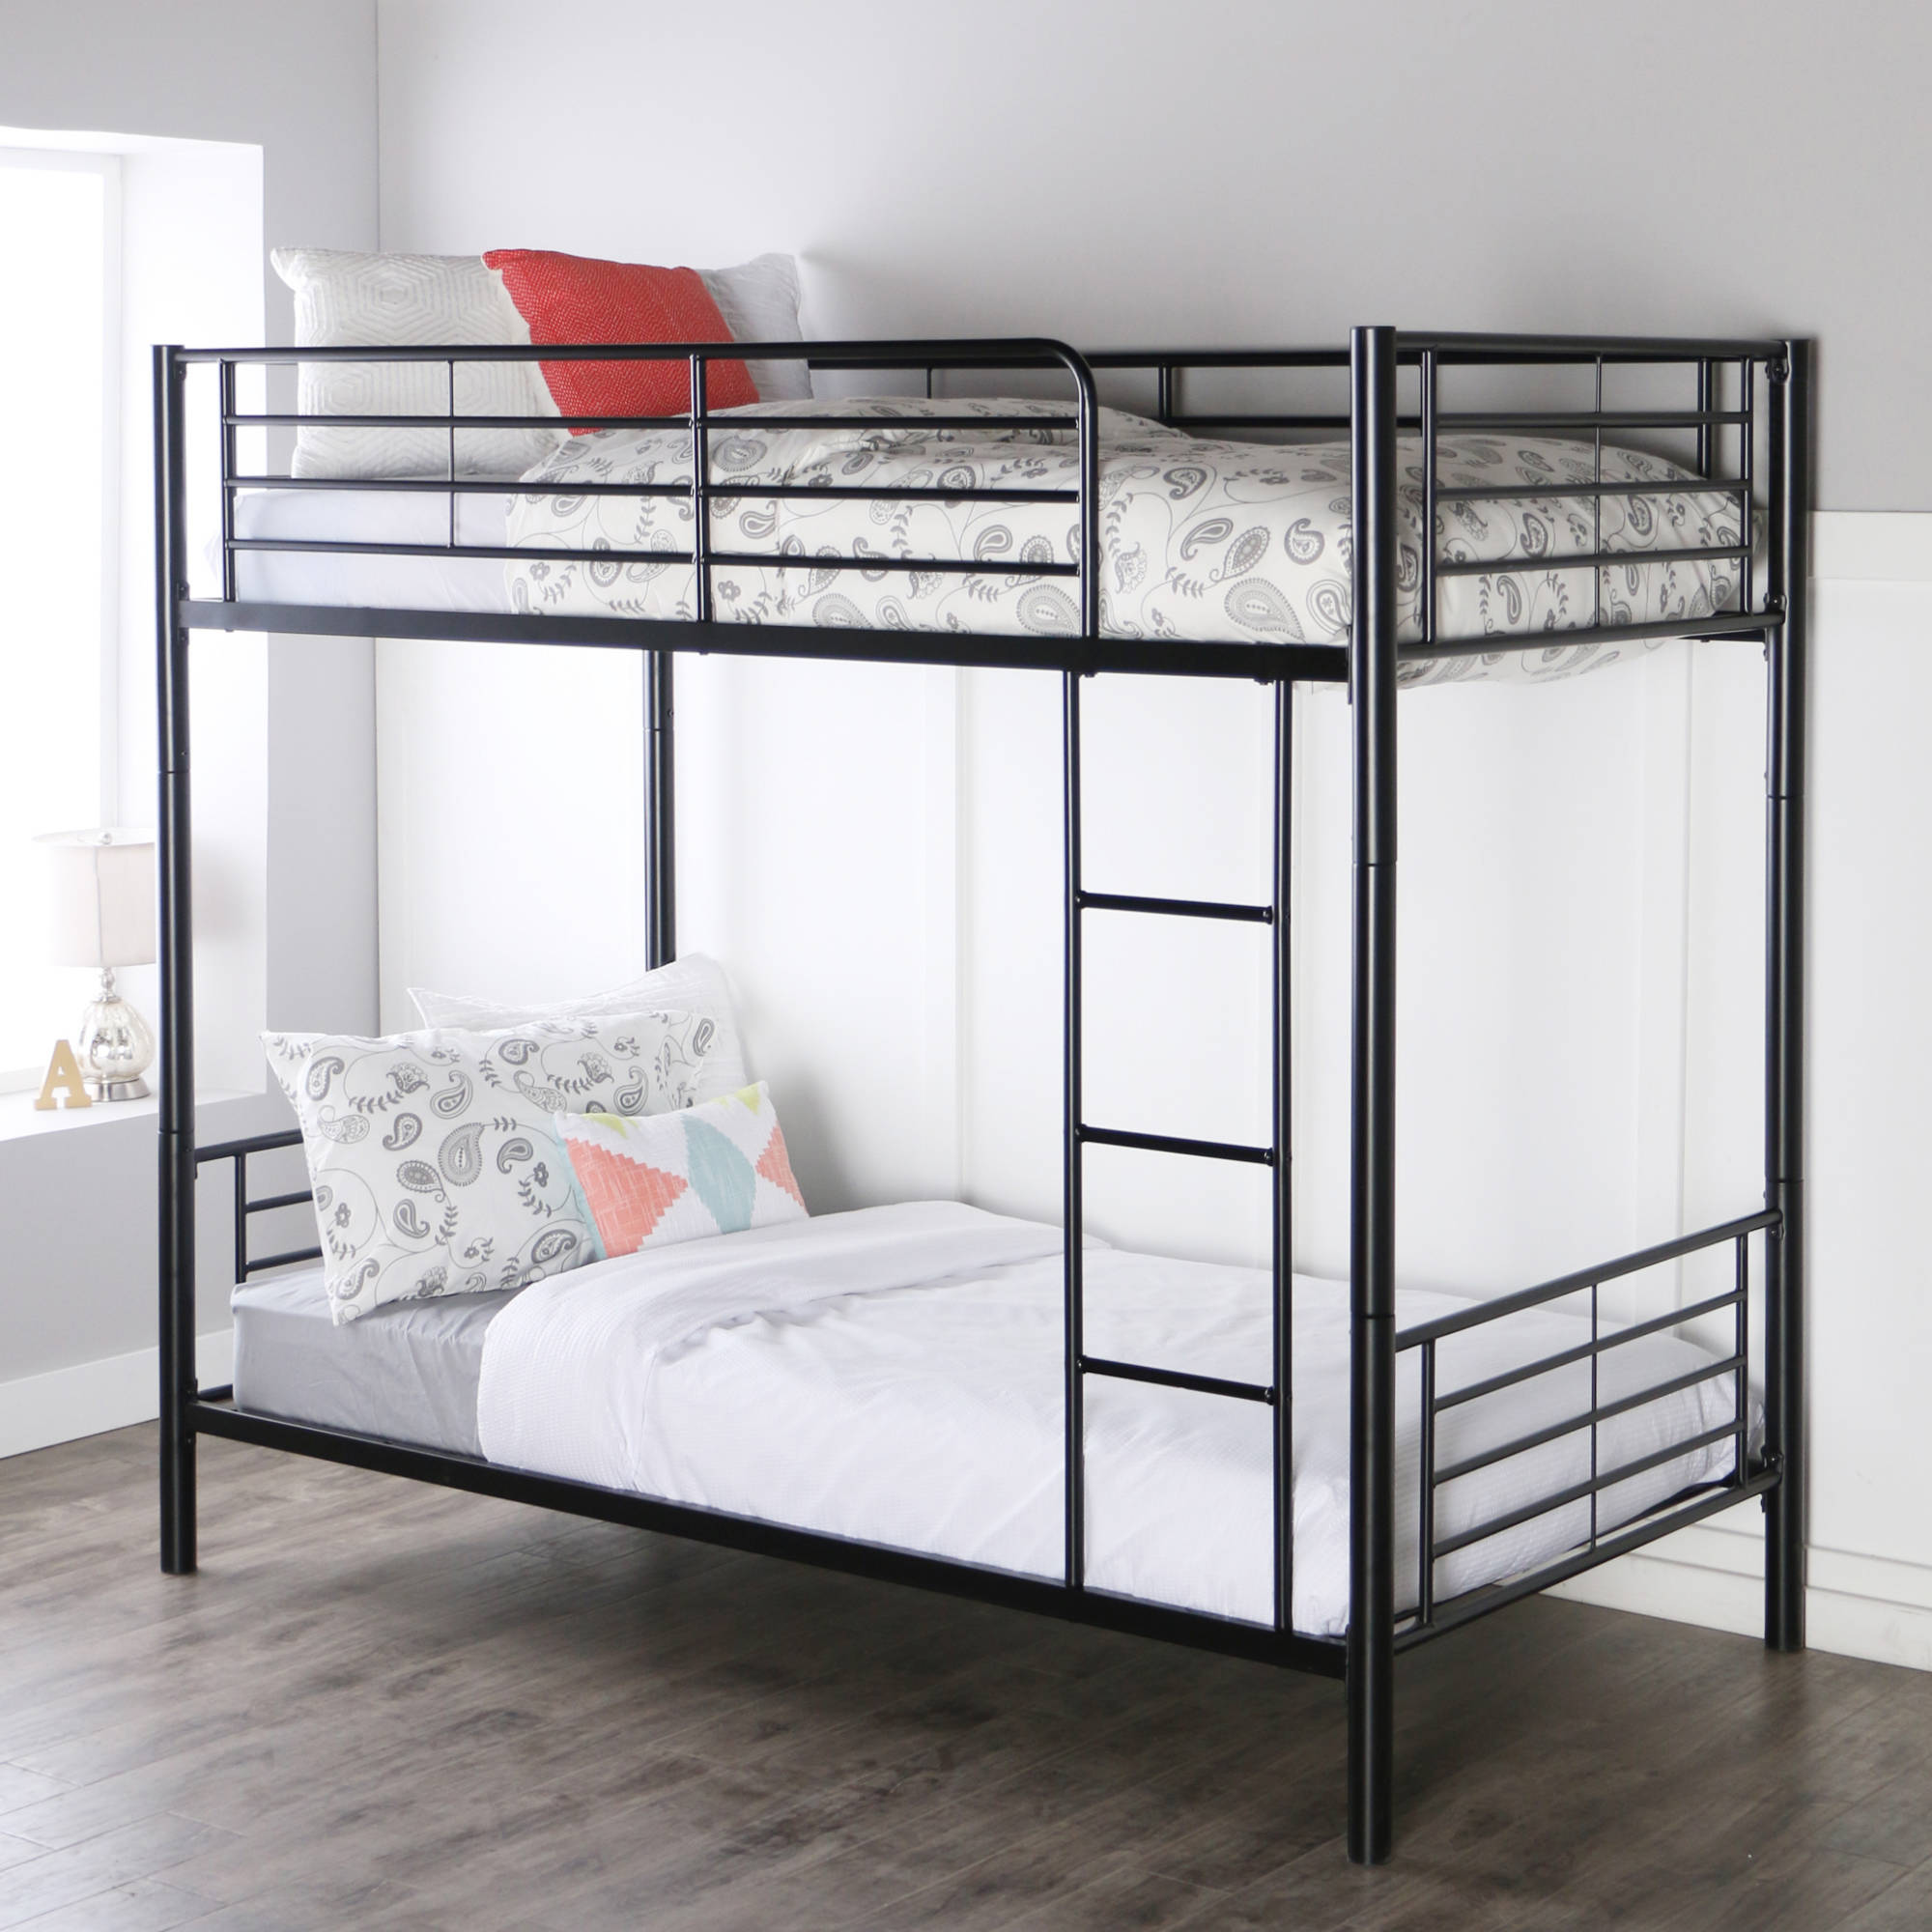 Bunk Beds Cambridge Trading Qatar